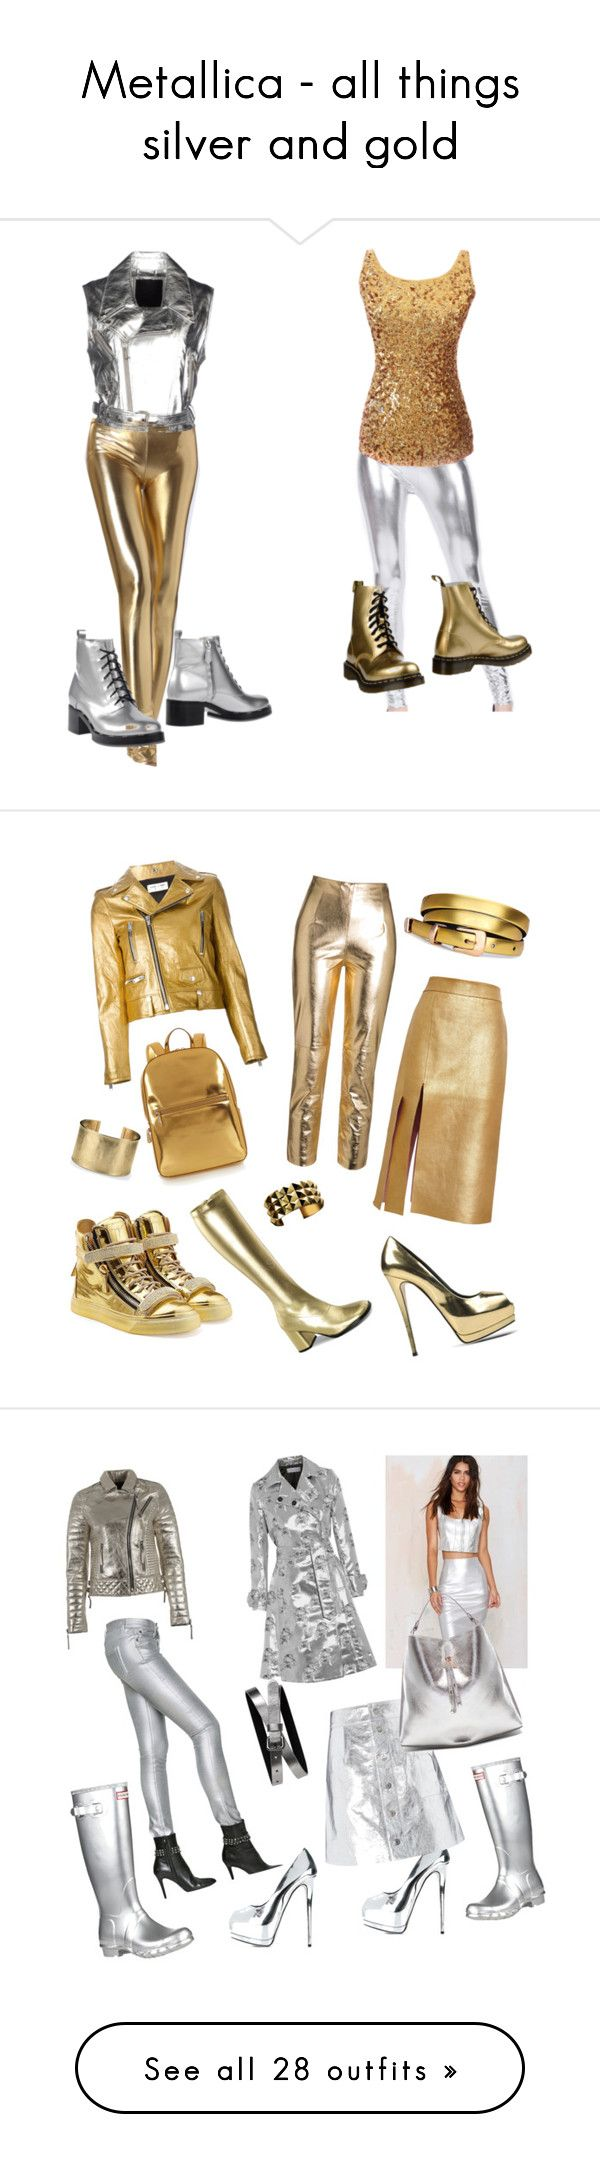 """Metallica - all things silver and gold"" by leatherboy ❤ liked on Polyvore featuring Philipp Plein, Dr. Martens, Pollini, Giuseppe Zanotti, Nina Ricci, Yves Saint Laurent, DKNY, Blue Nile, J.O.A. and Coperni Femme"